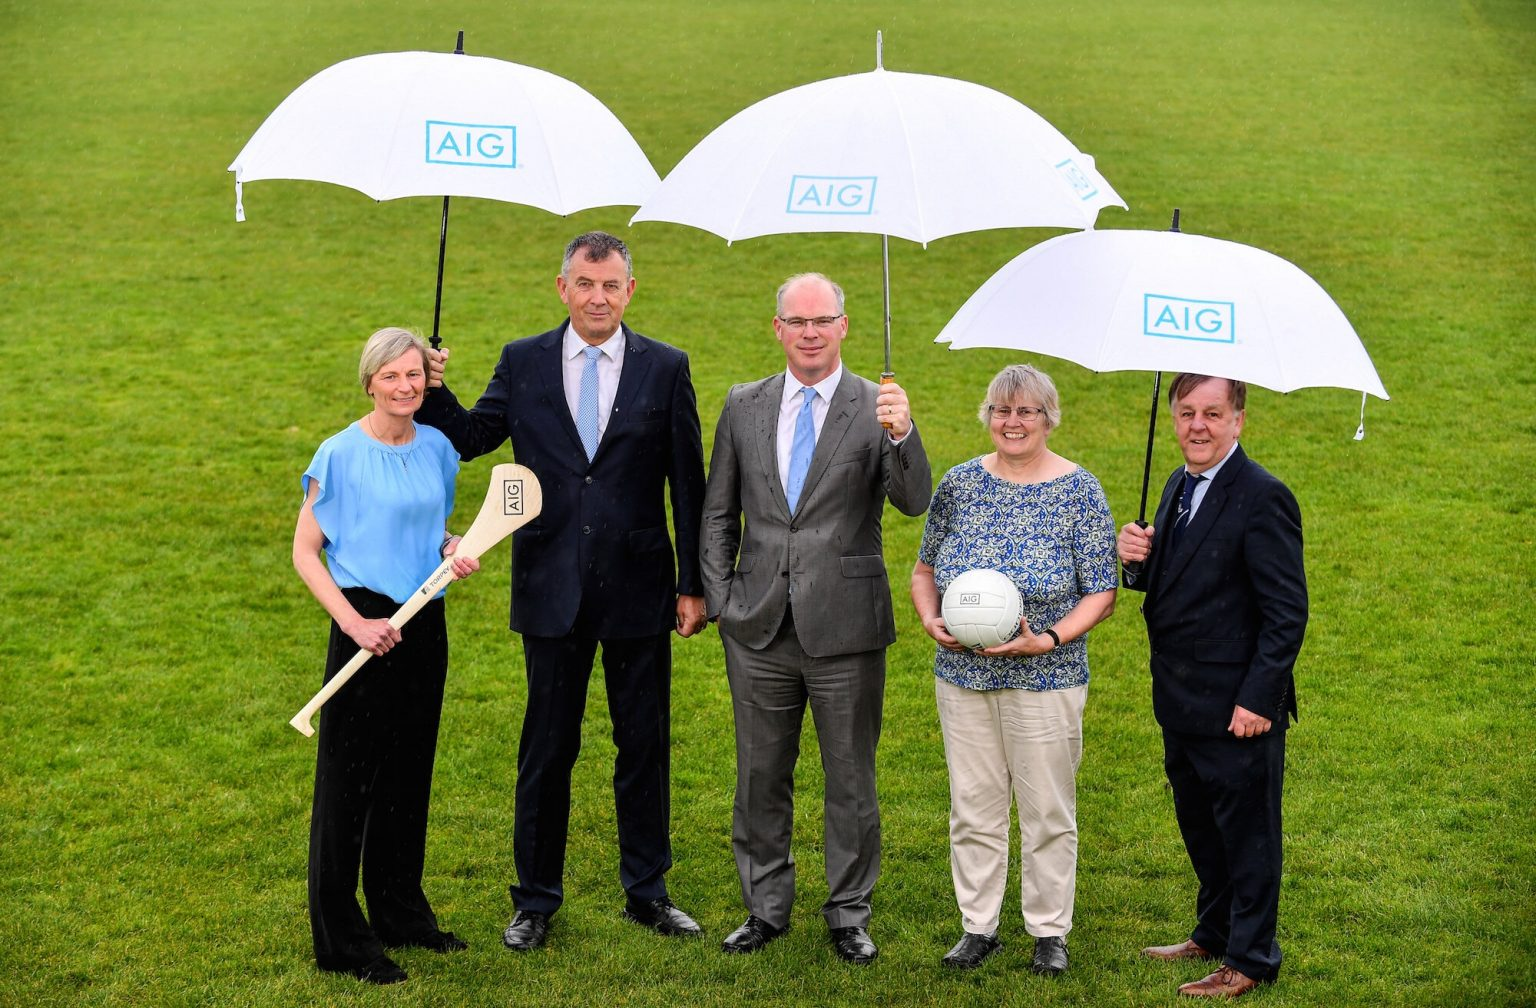 Dublin Camógie Chairwoman Jenny Byrne, Dublin GAA CEO John Costello, AIG General Manager Declan O'Rourke,Dublin LGFA Secretary Mary O'Connor and Dublin County Board Vice-Chairman Mick Seavers On A Green Pitch at the announcement of AIG extending their sponsorship of Dublin GAA